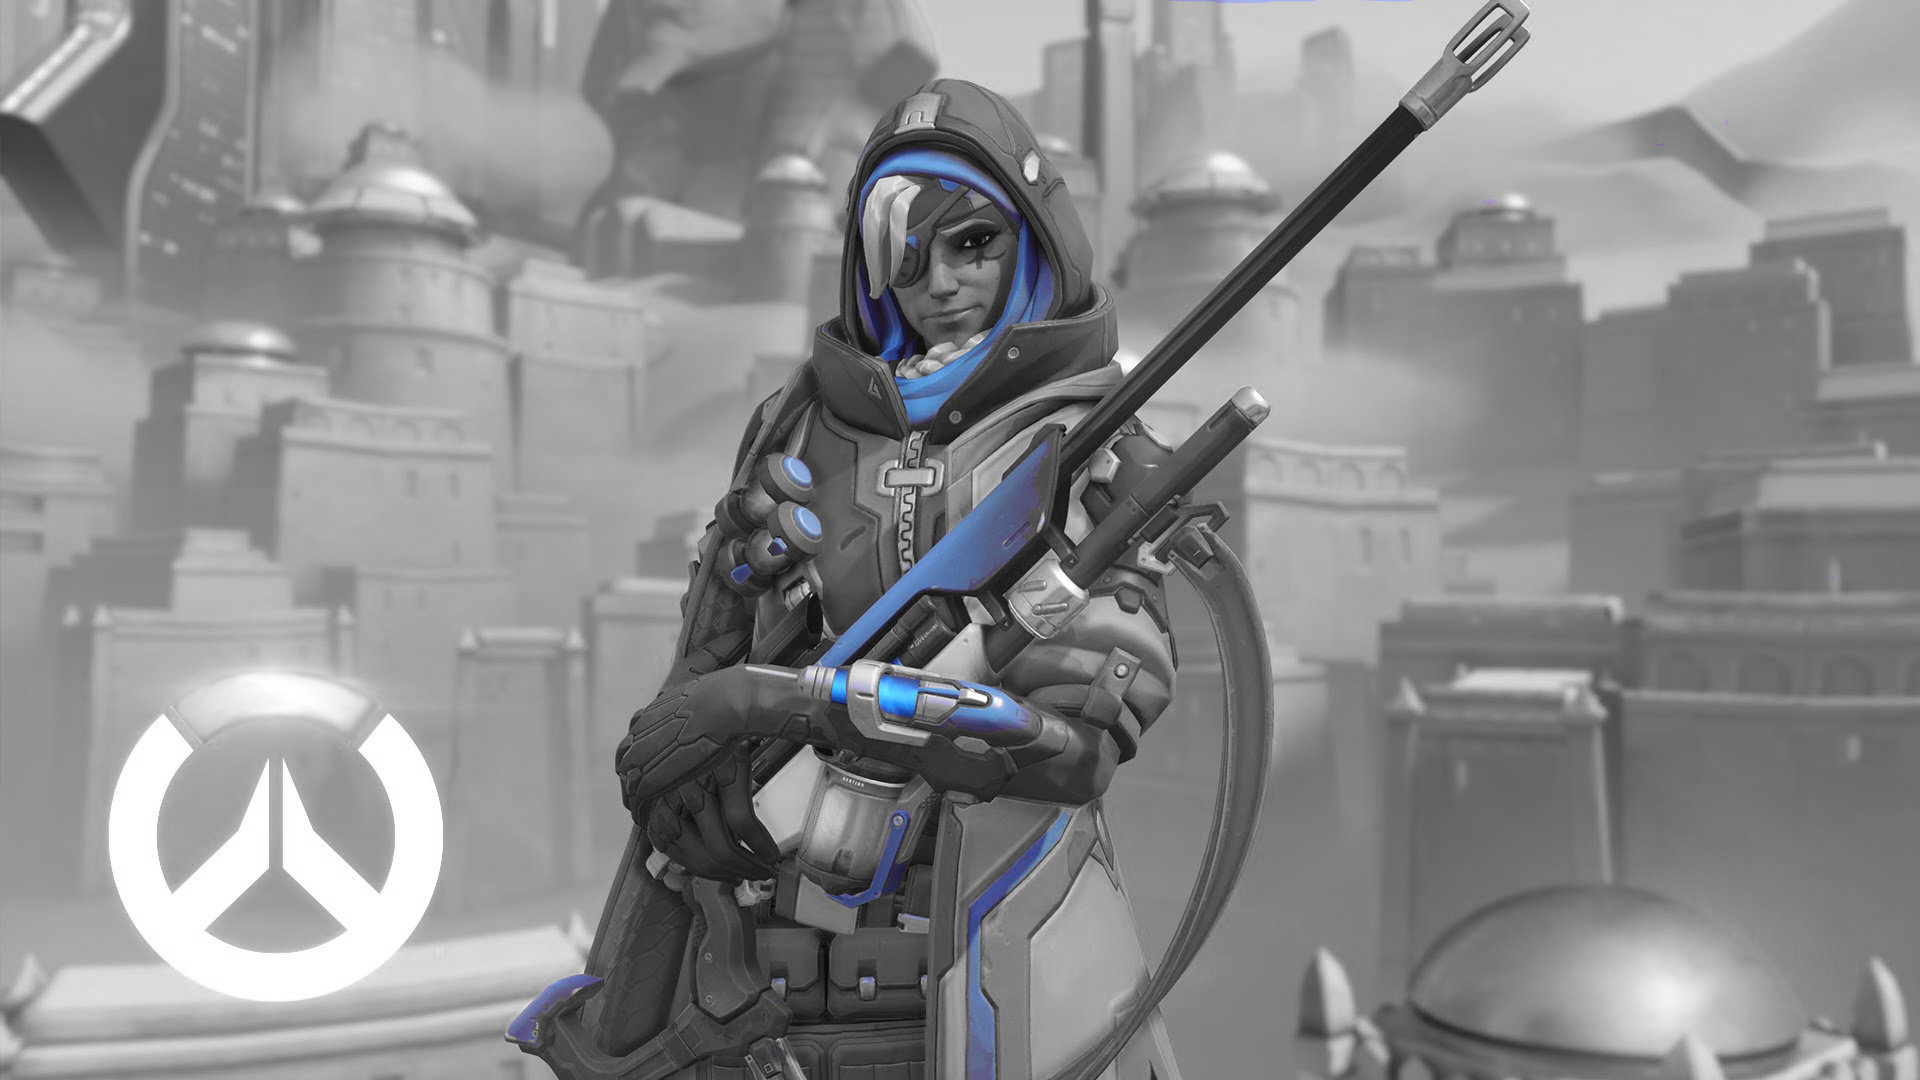 Download 1080p Ana Overwatch Pc Wallpaper Id170343 For Free